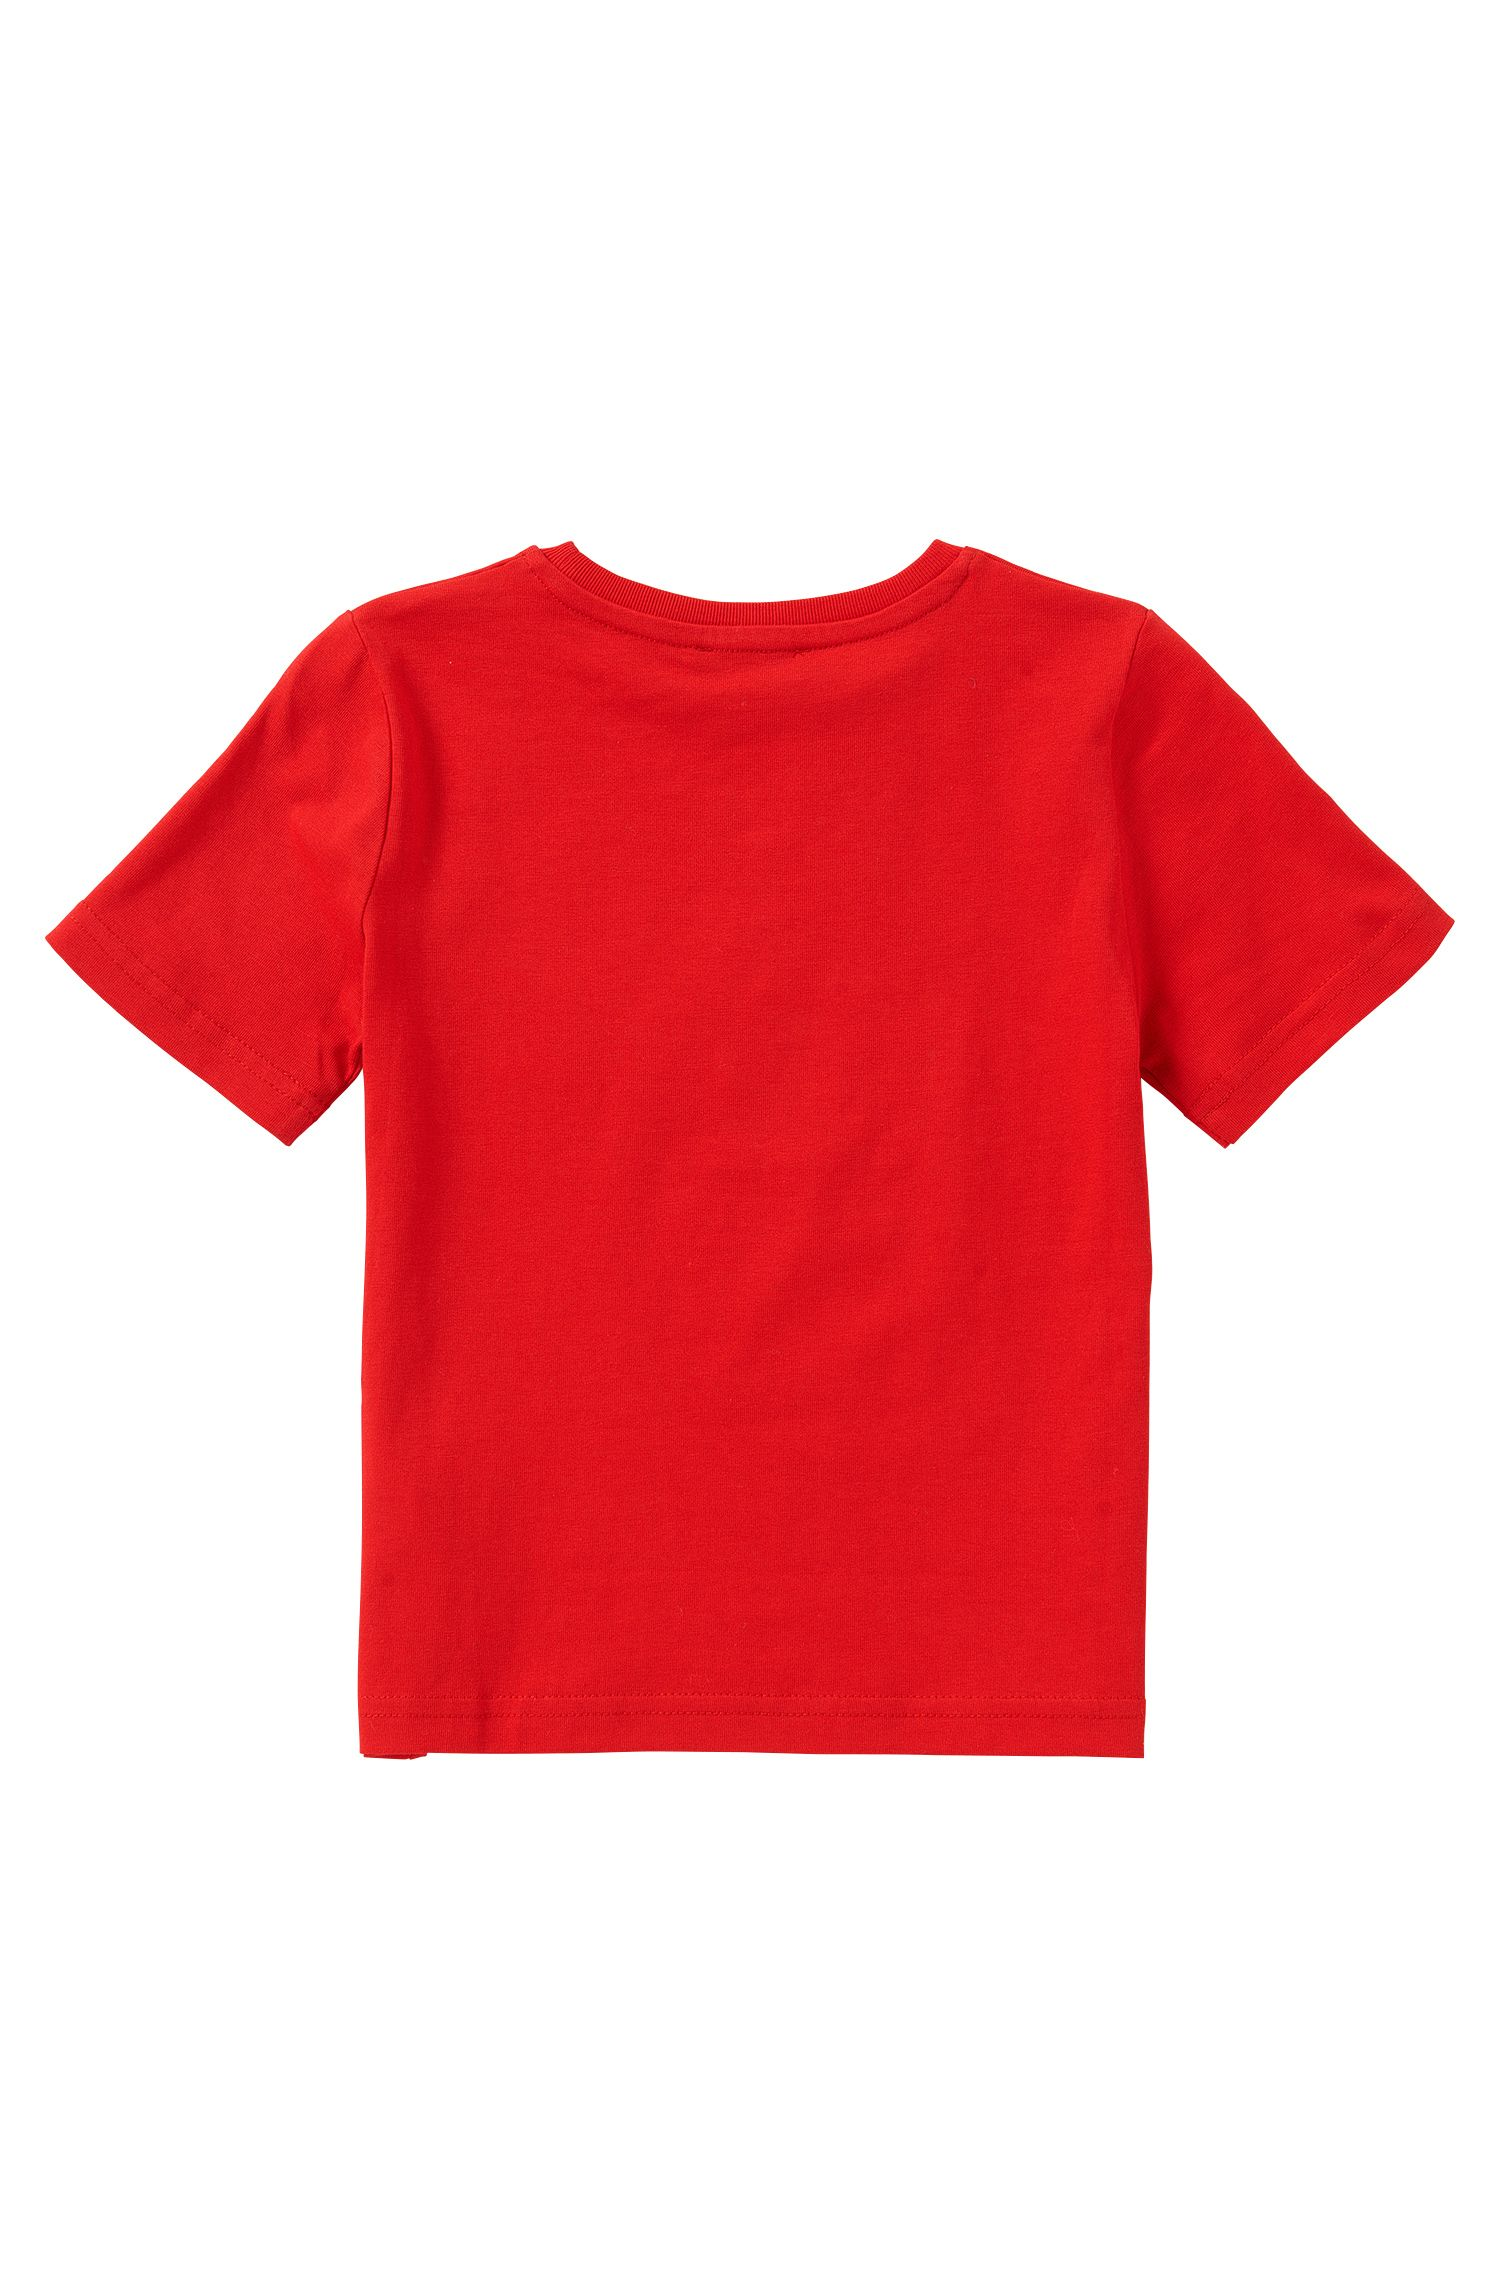 Regular-Fit Kids-T-Shirt aus Baumwolle: 'J25U00'